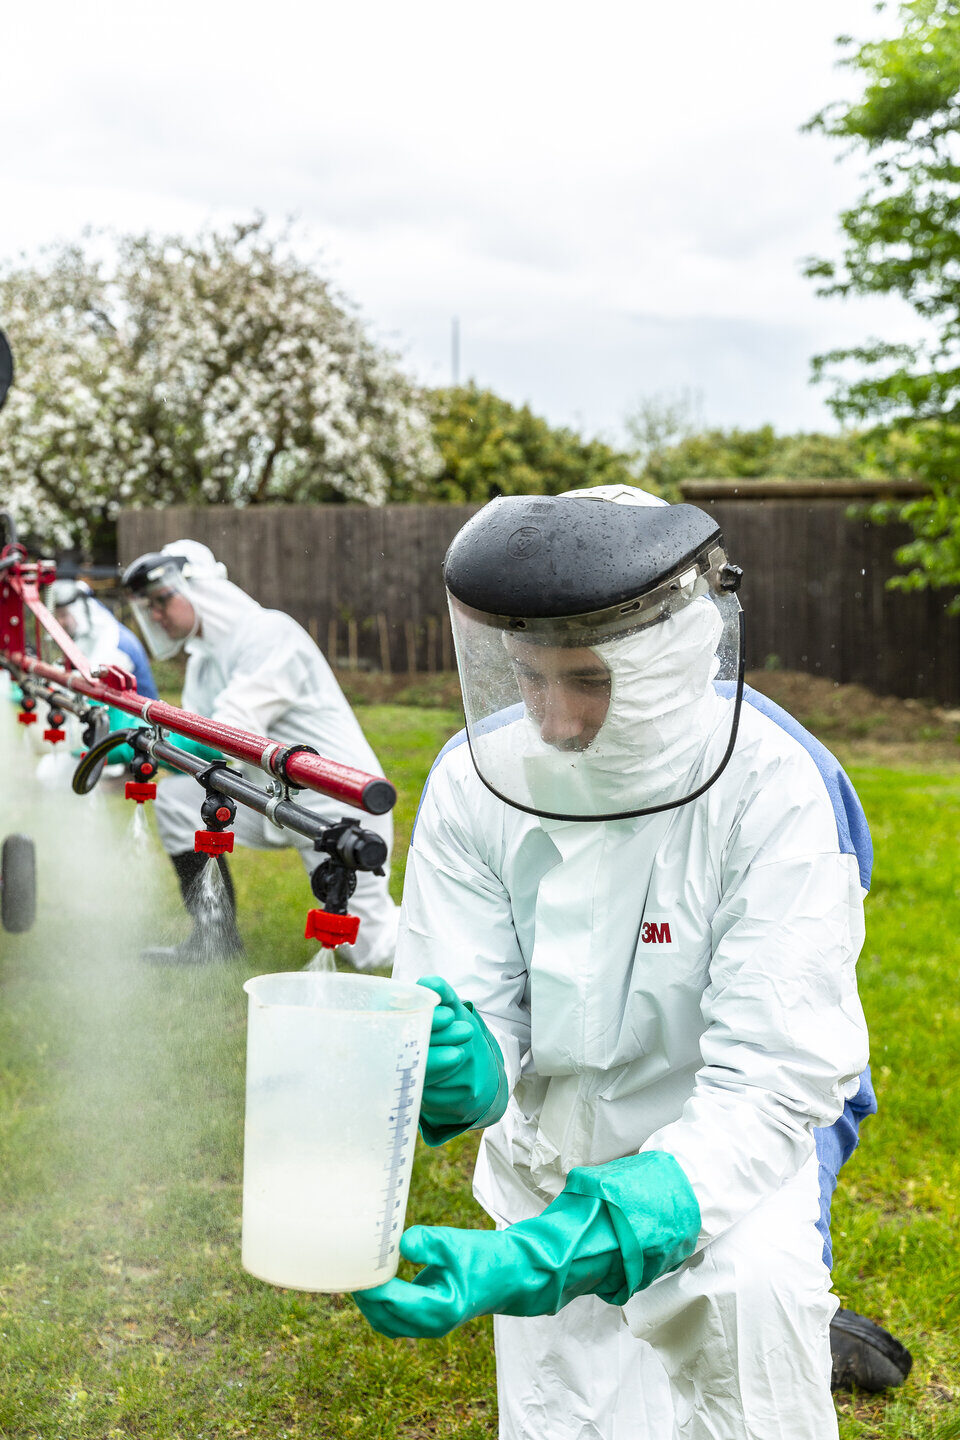 Agriculture students with sprayer Shuttleworth College